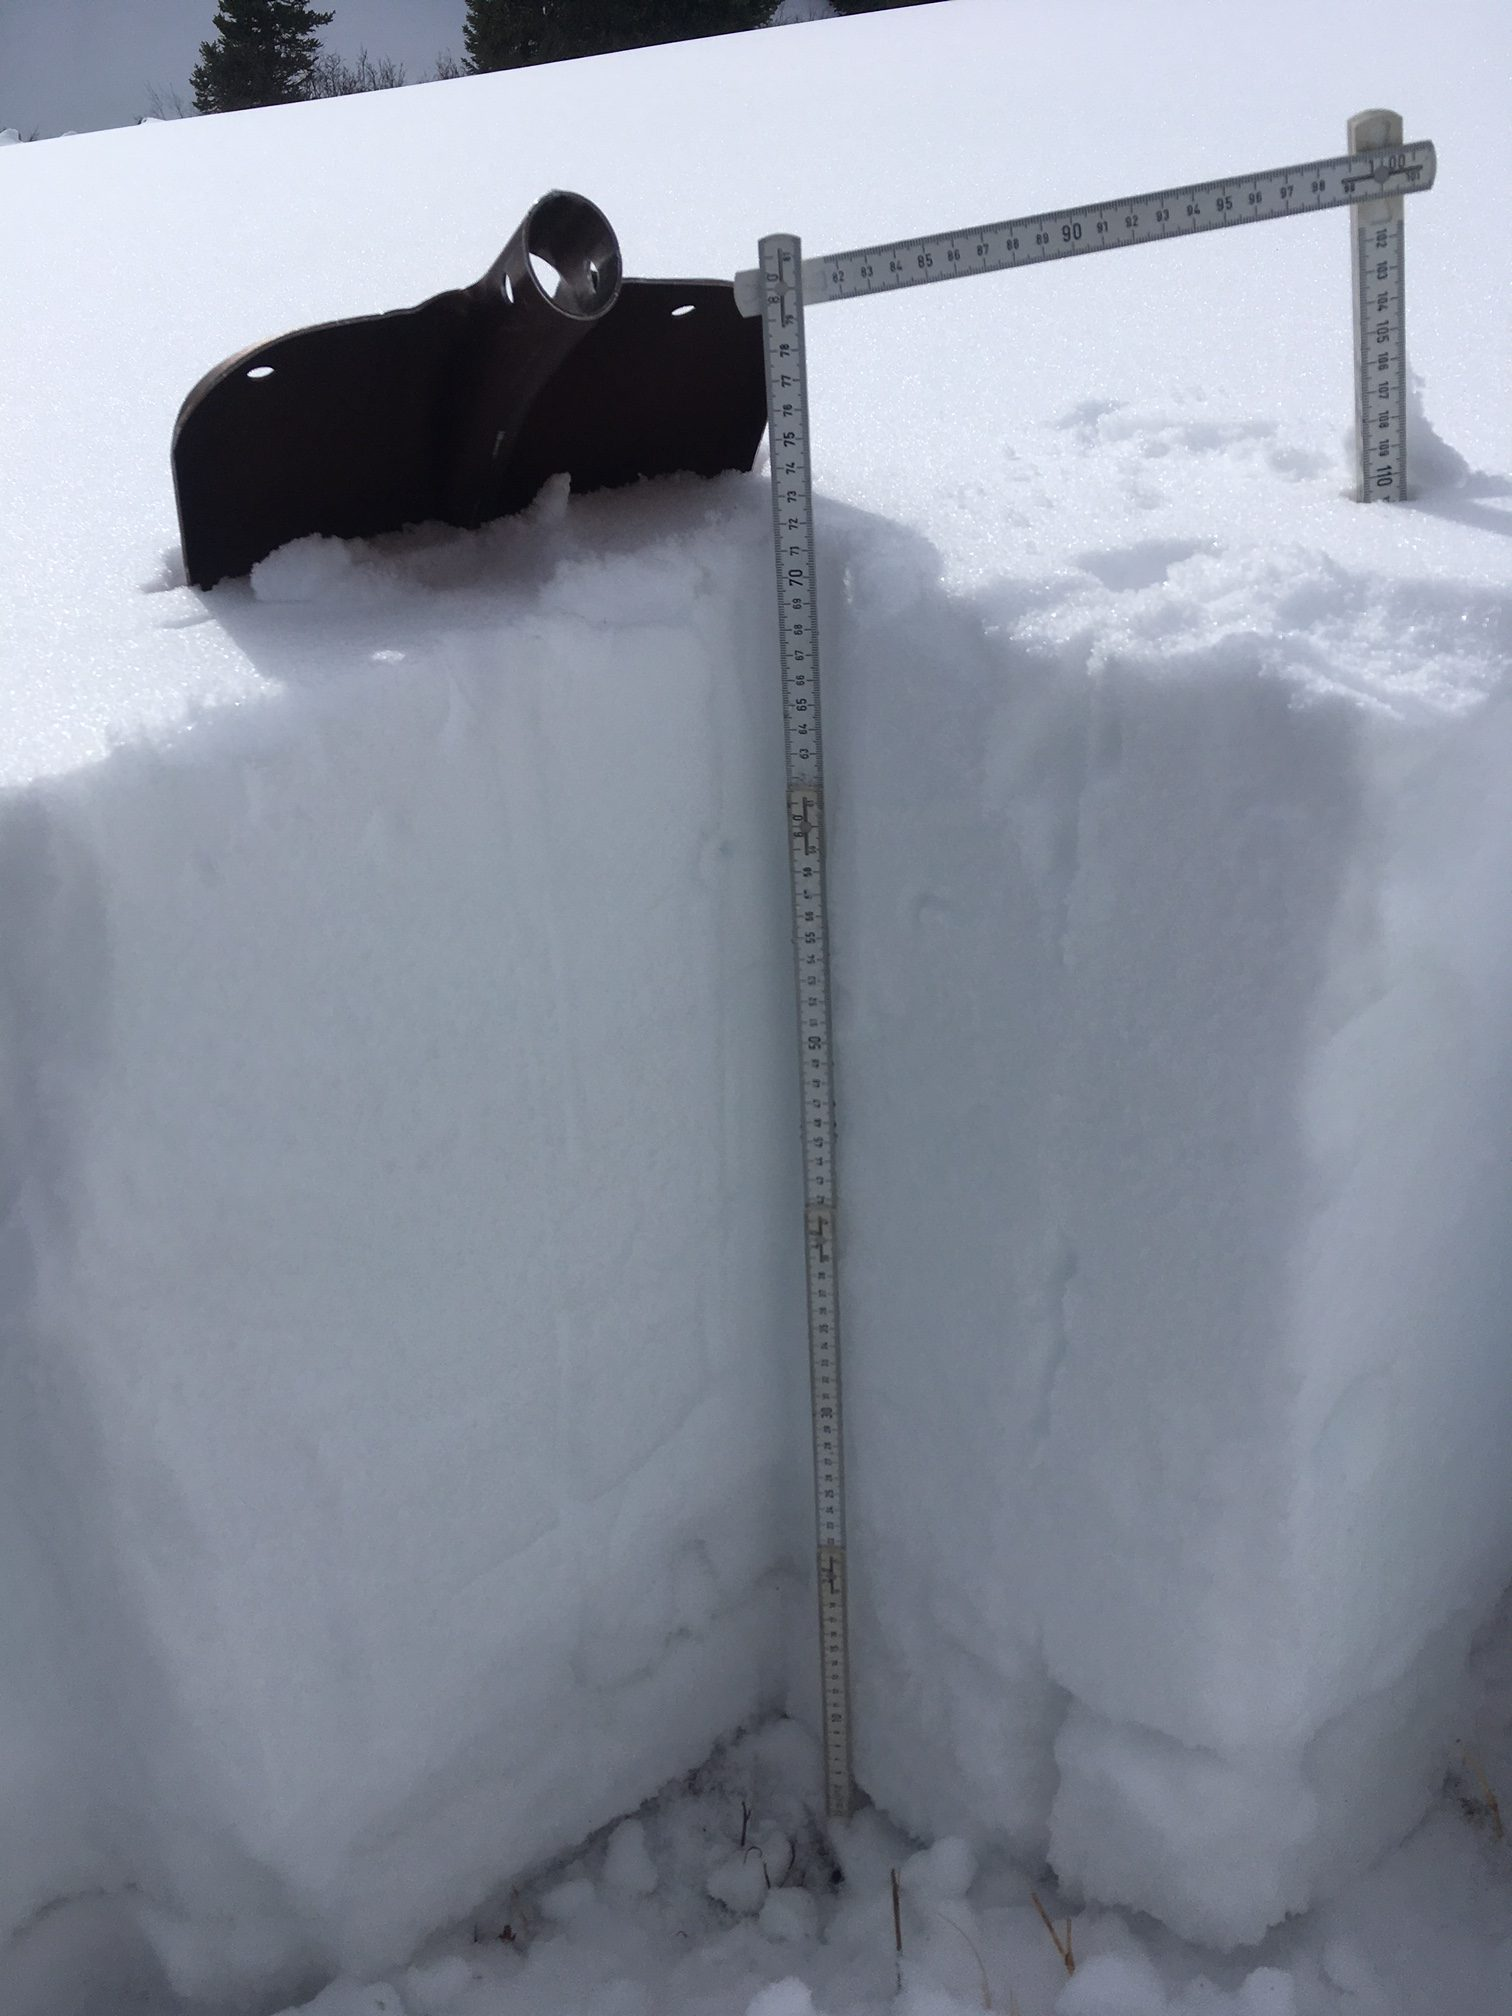 Winter Storm Data Archive Center For Snow And Avalanche Studies